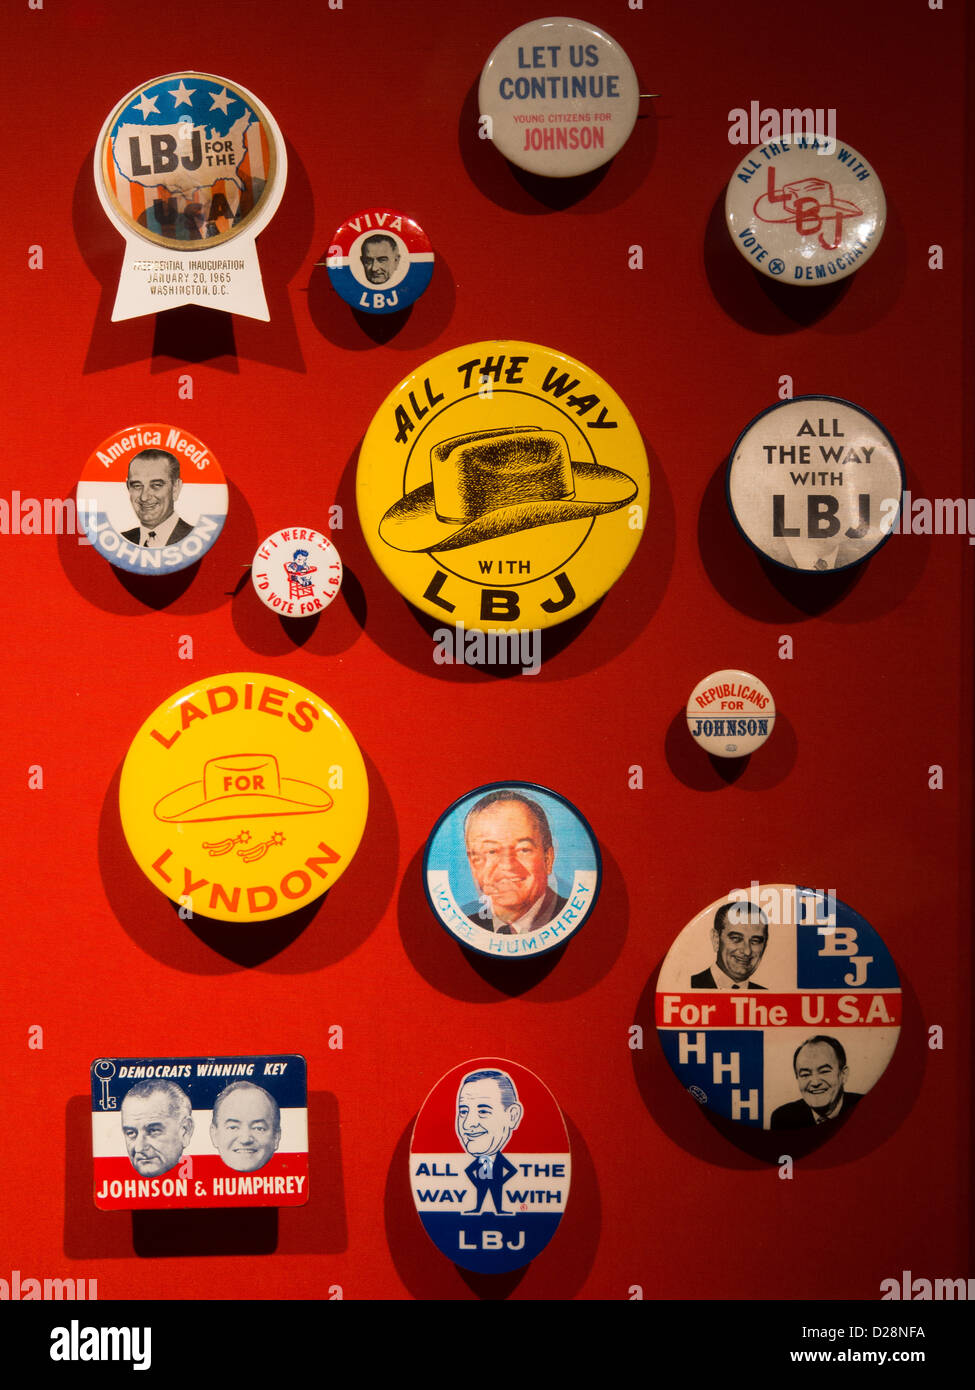 LBJ Presidential campaign buttons in an exhibit at the LBJ Museum and Presidential Library in Austin, Texas Stock Photo